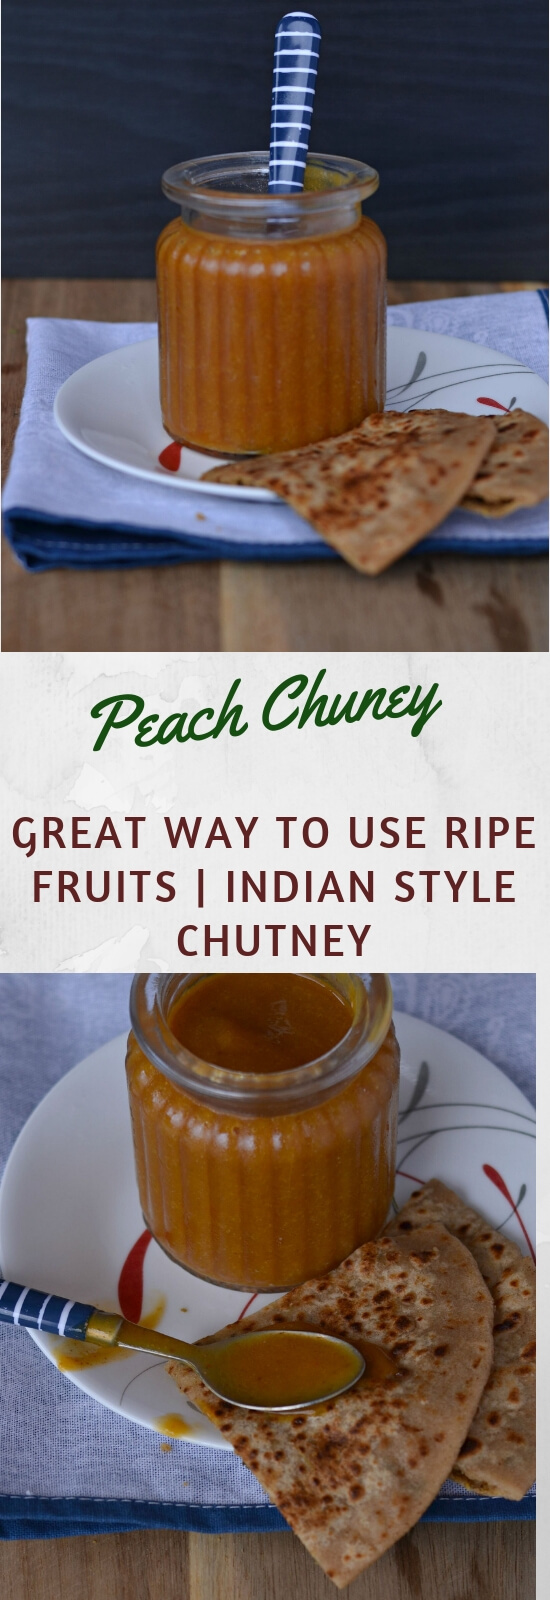 Peach chutney is sweet, slightly hot and savory condiment which goes very well with fritters, sandwiches, Indian flatbread (paratha) and many more. This taste great with the goodness of peach.